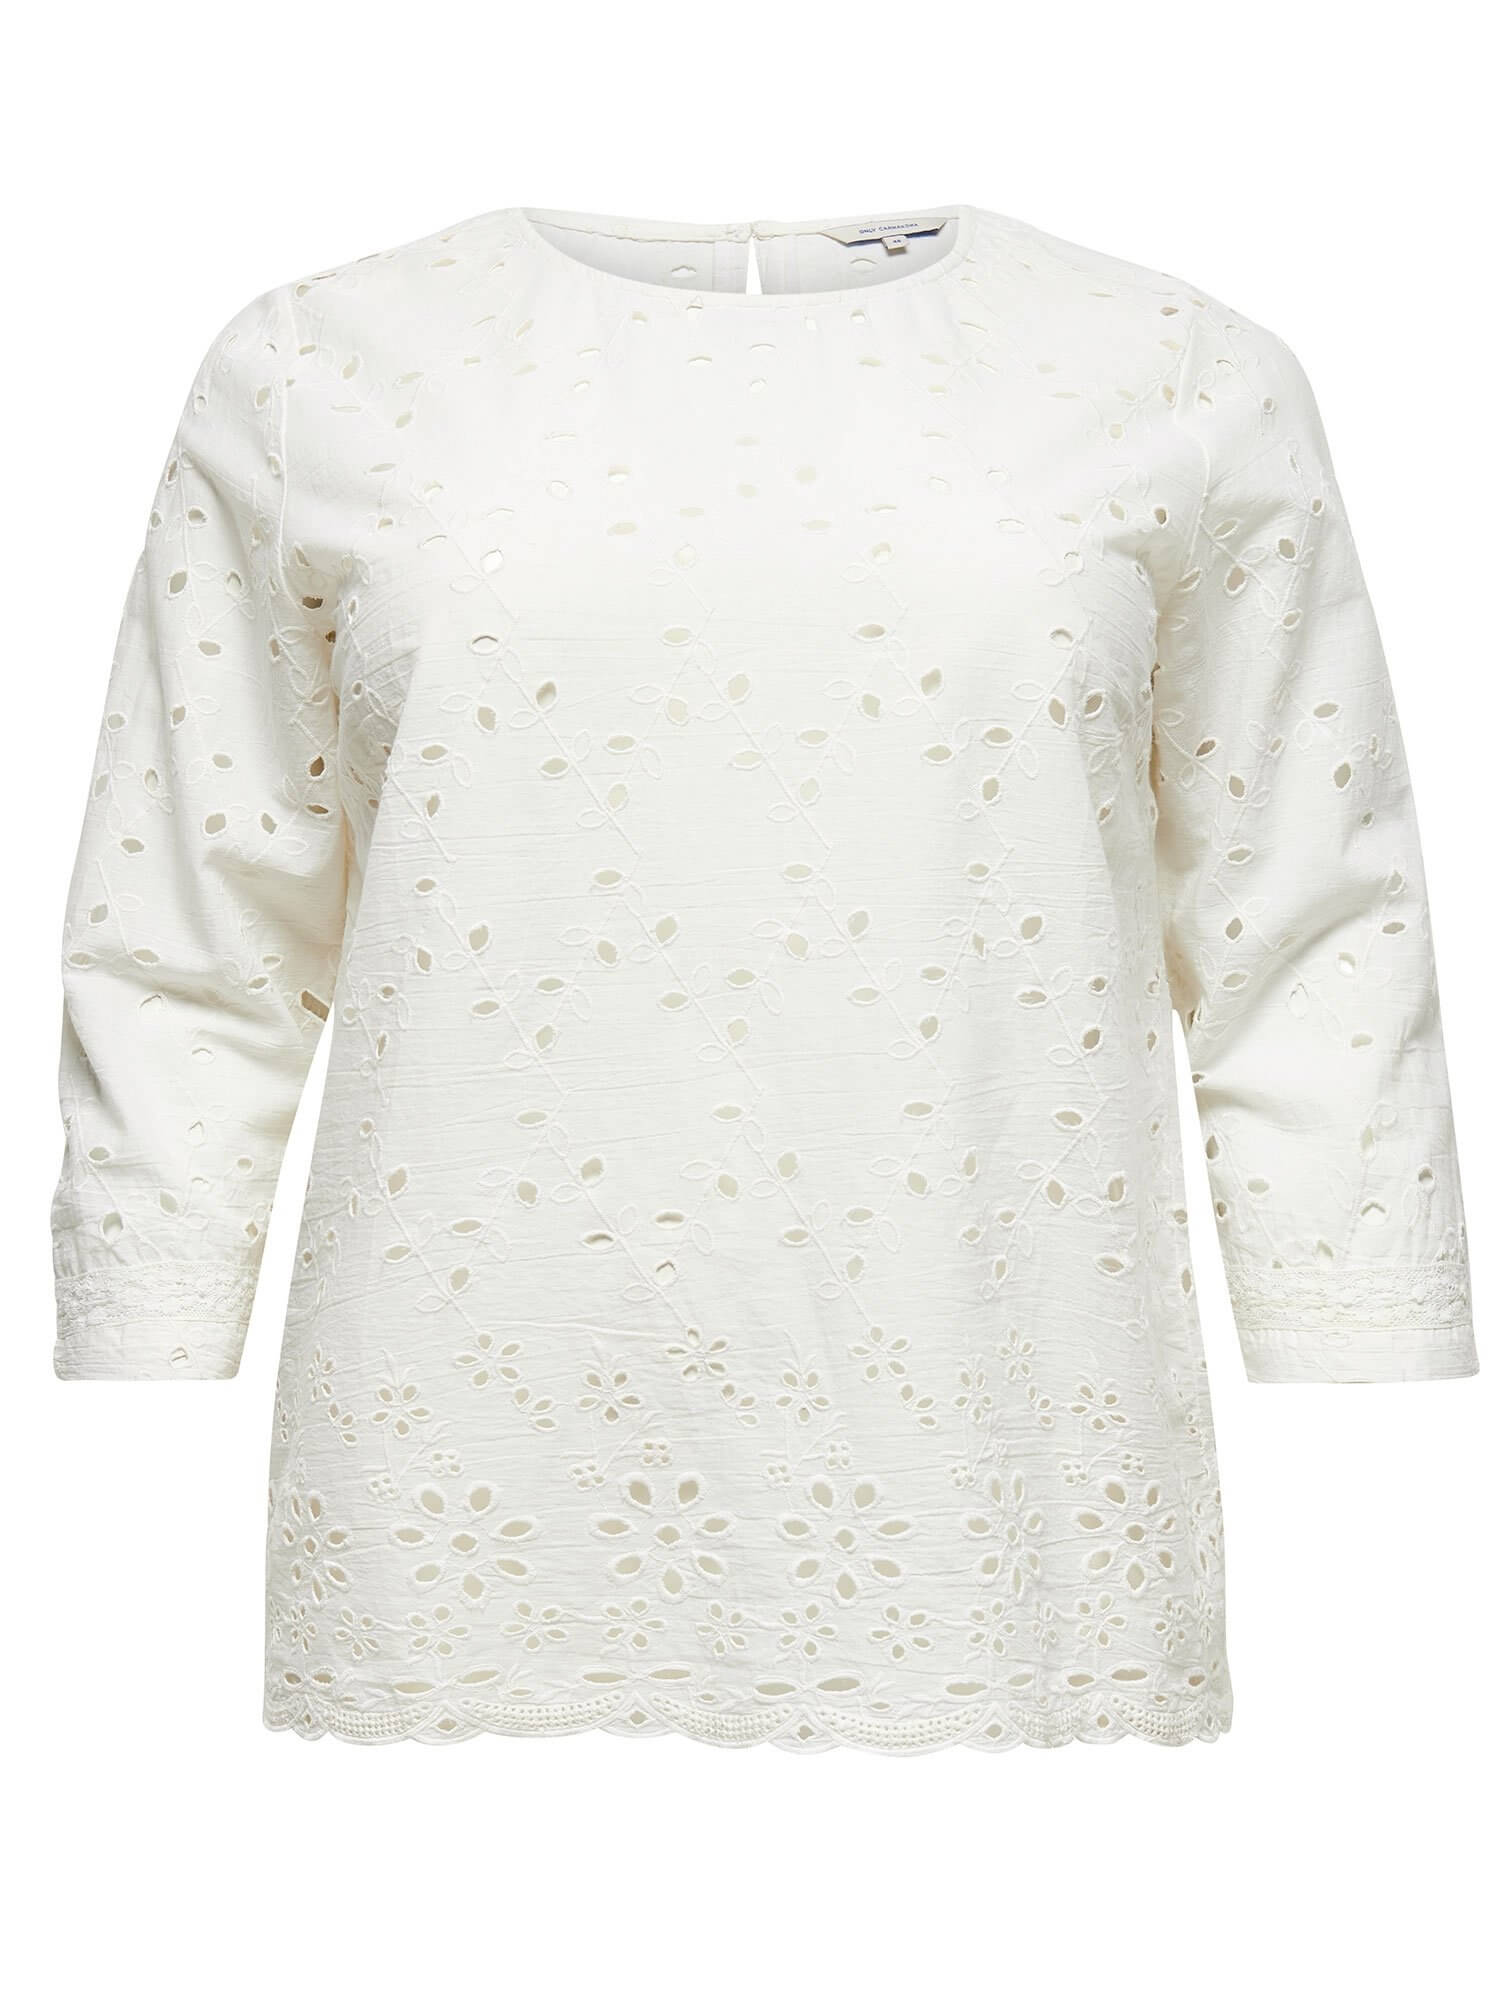 Hvid broderie anglaise bluse